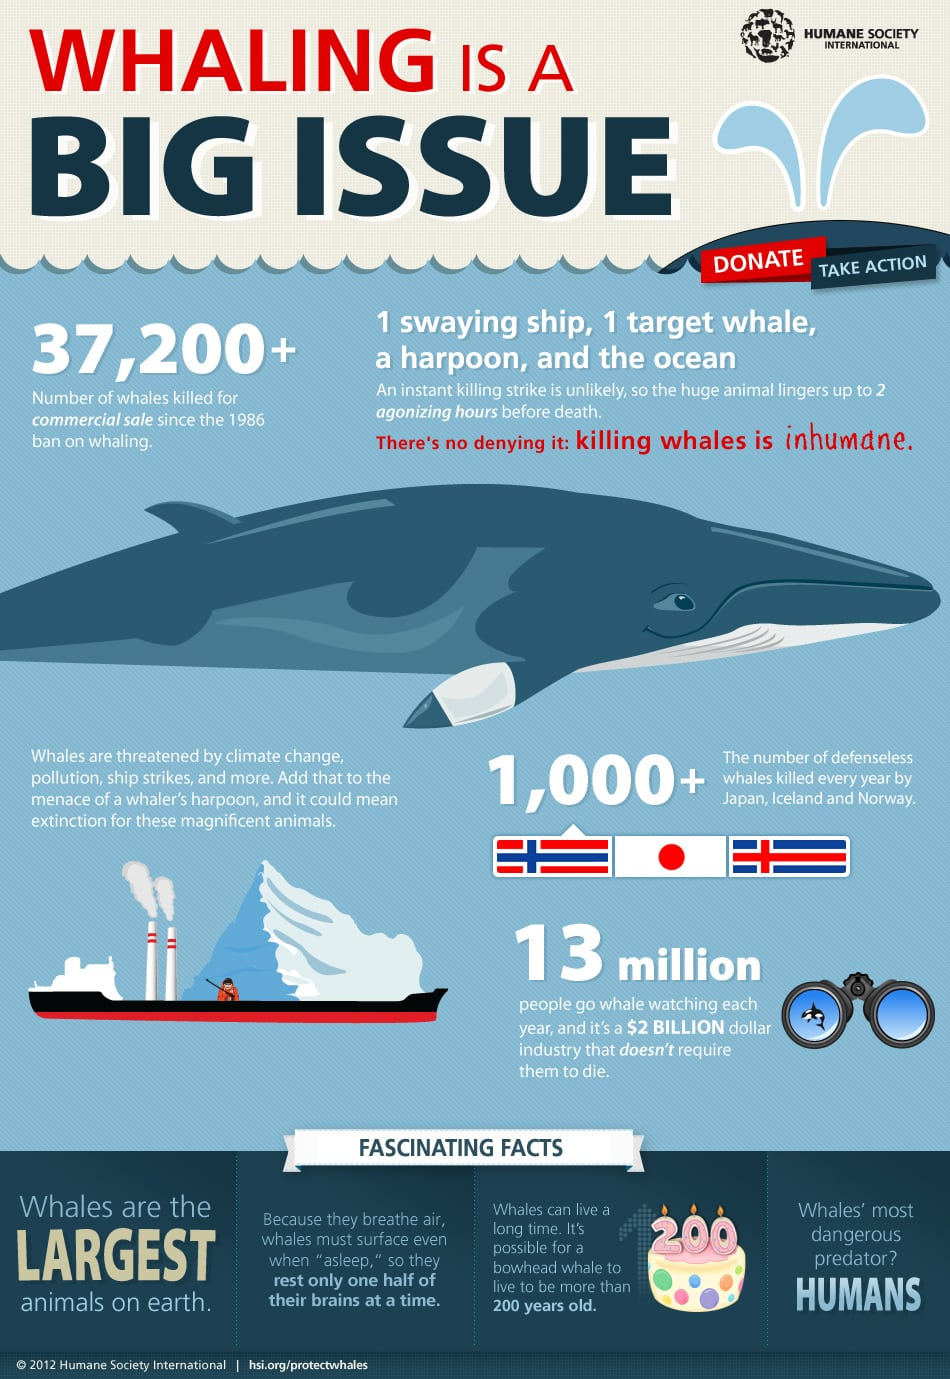 Killing Whales is Inhumane - There's No Denying It